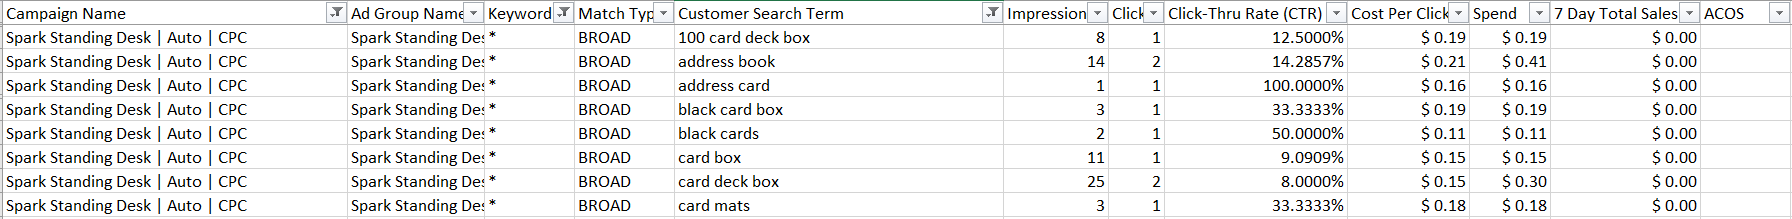 Screenshot showing a spreadsheet